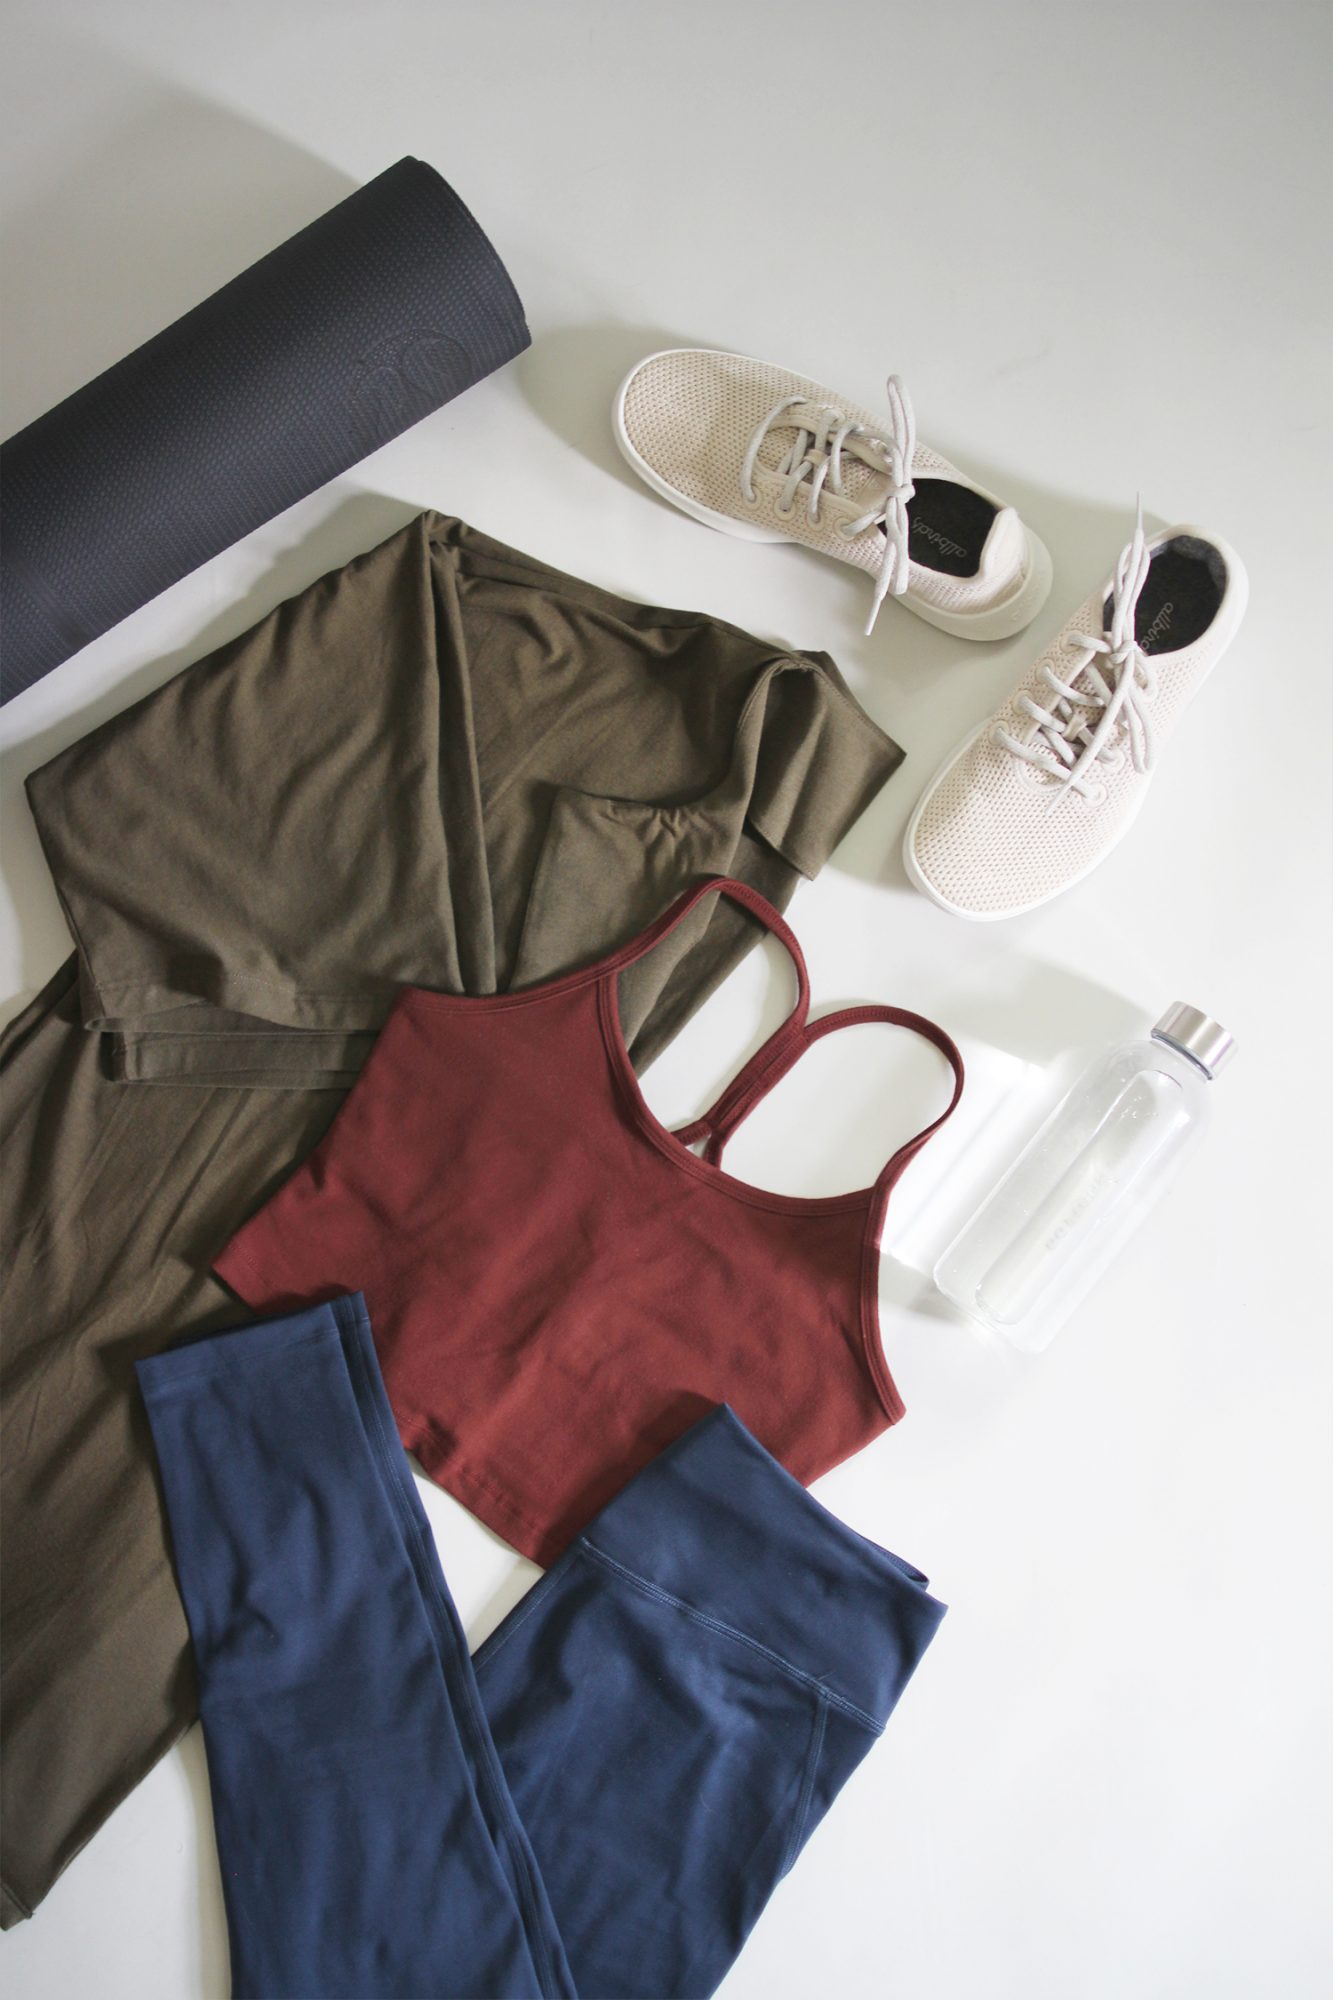 Style Bee - Summer 10x10 - Activewear Edition